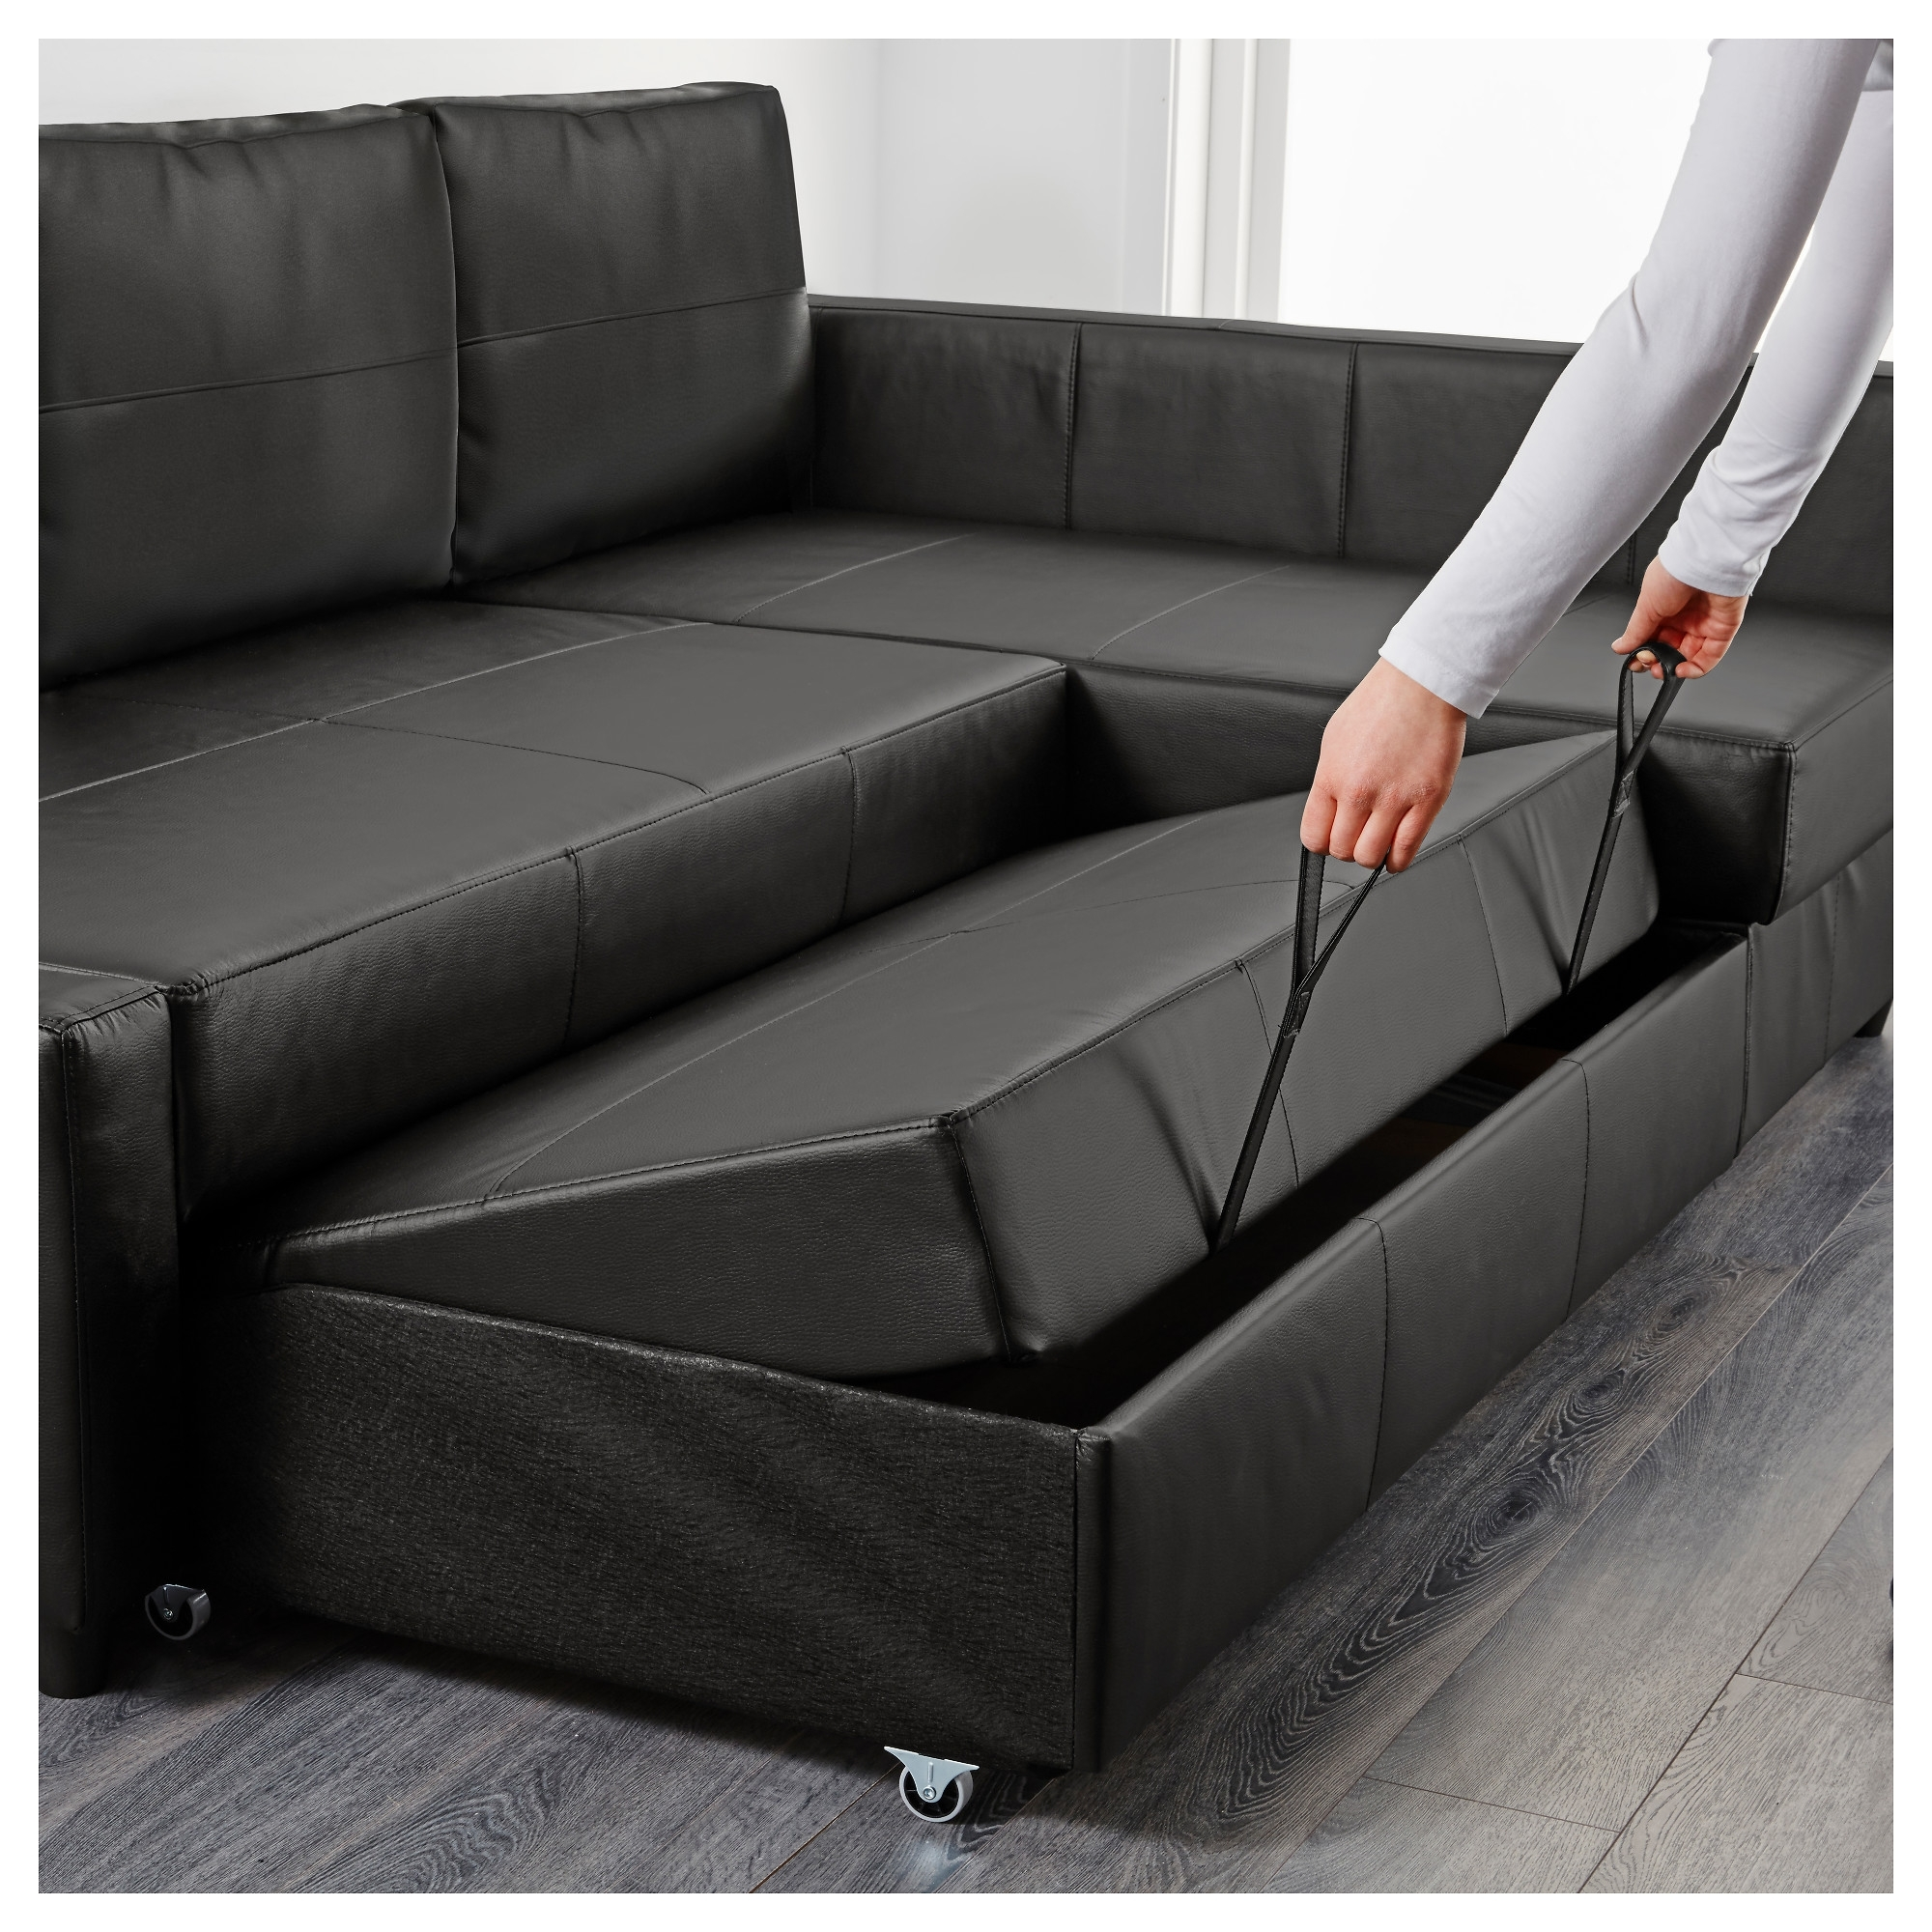 Trendy Ikea Corner Sofas With Storage Intended For Friheten Corner Sofa Bed With Storage Bomstad Black – Ikea (View 11 of 15)